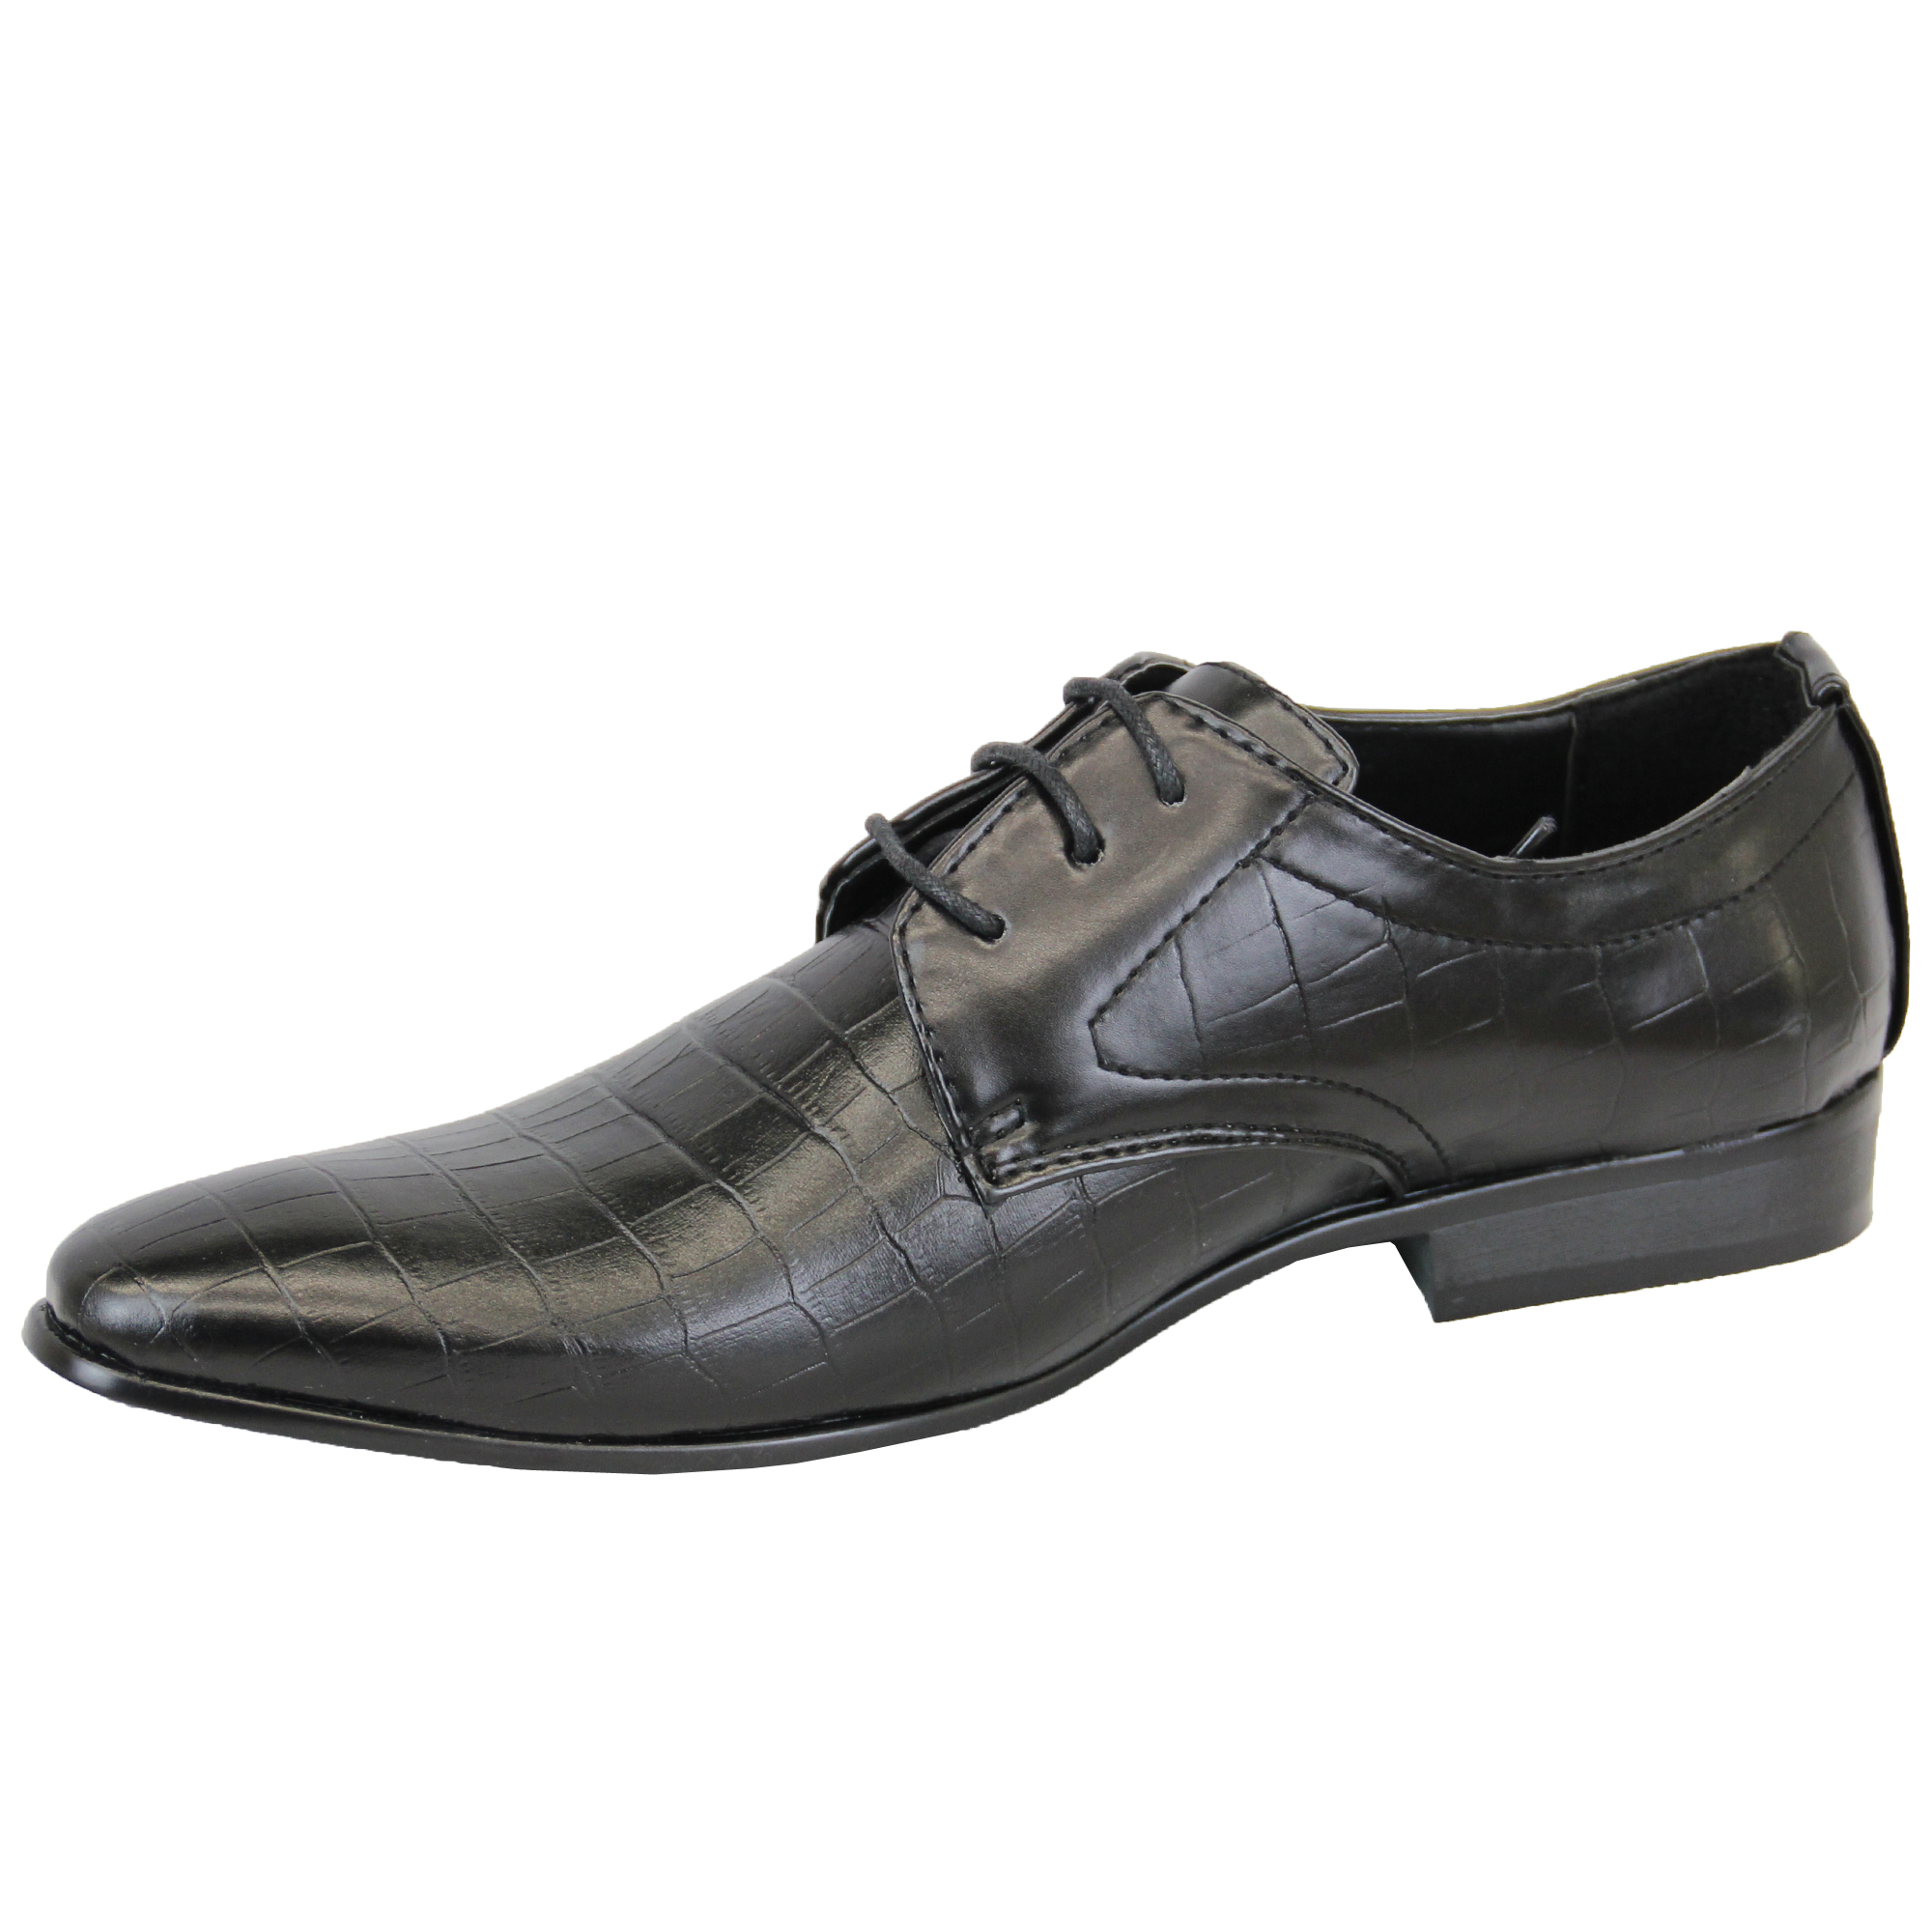 mens italian shoes formal lace up leather look work